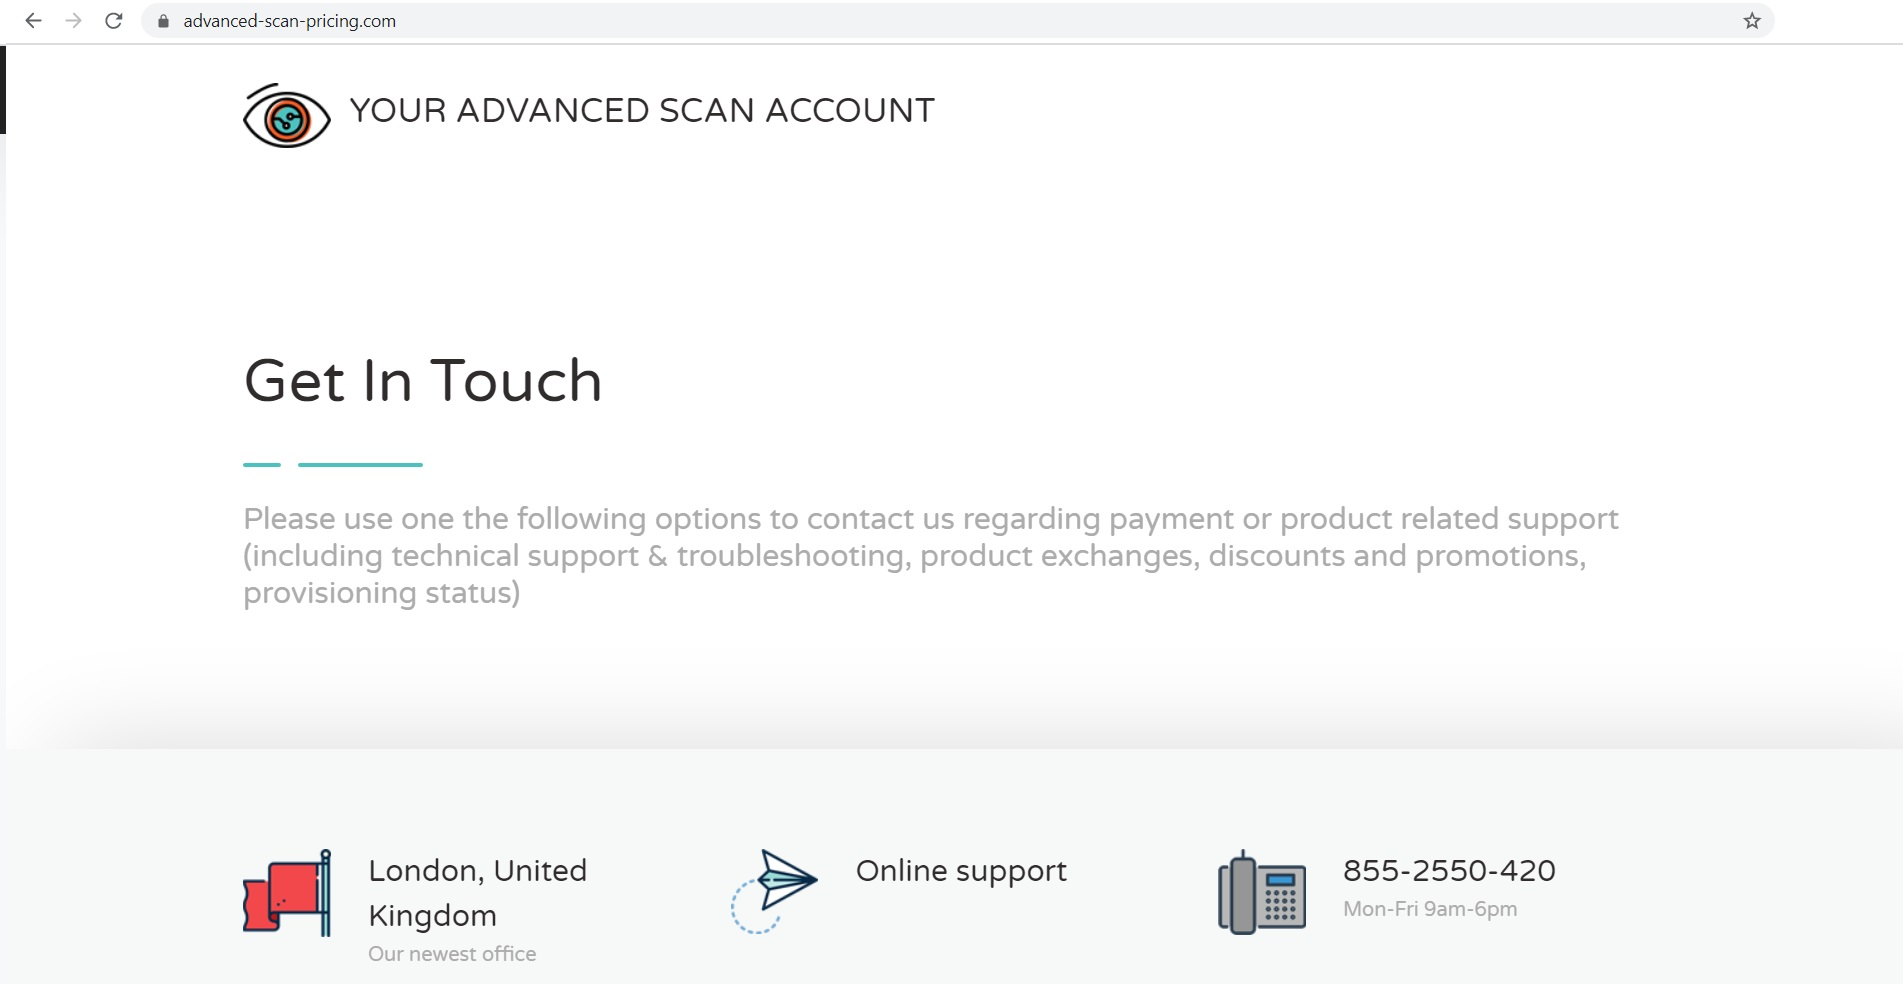 Advanced-scan-pricing.com